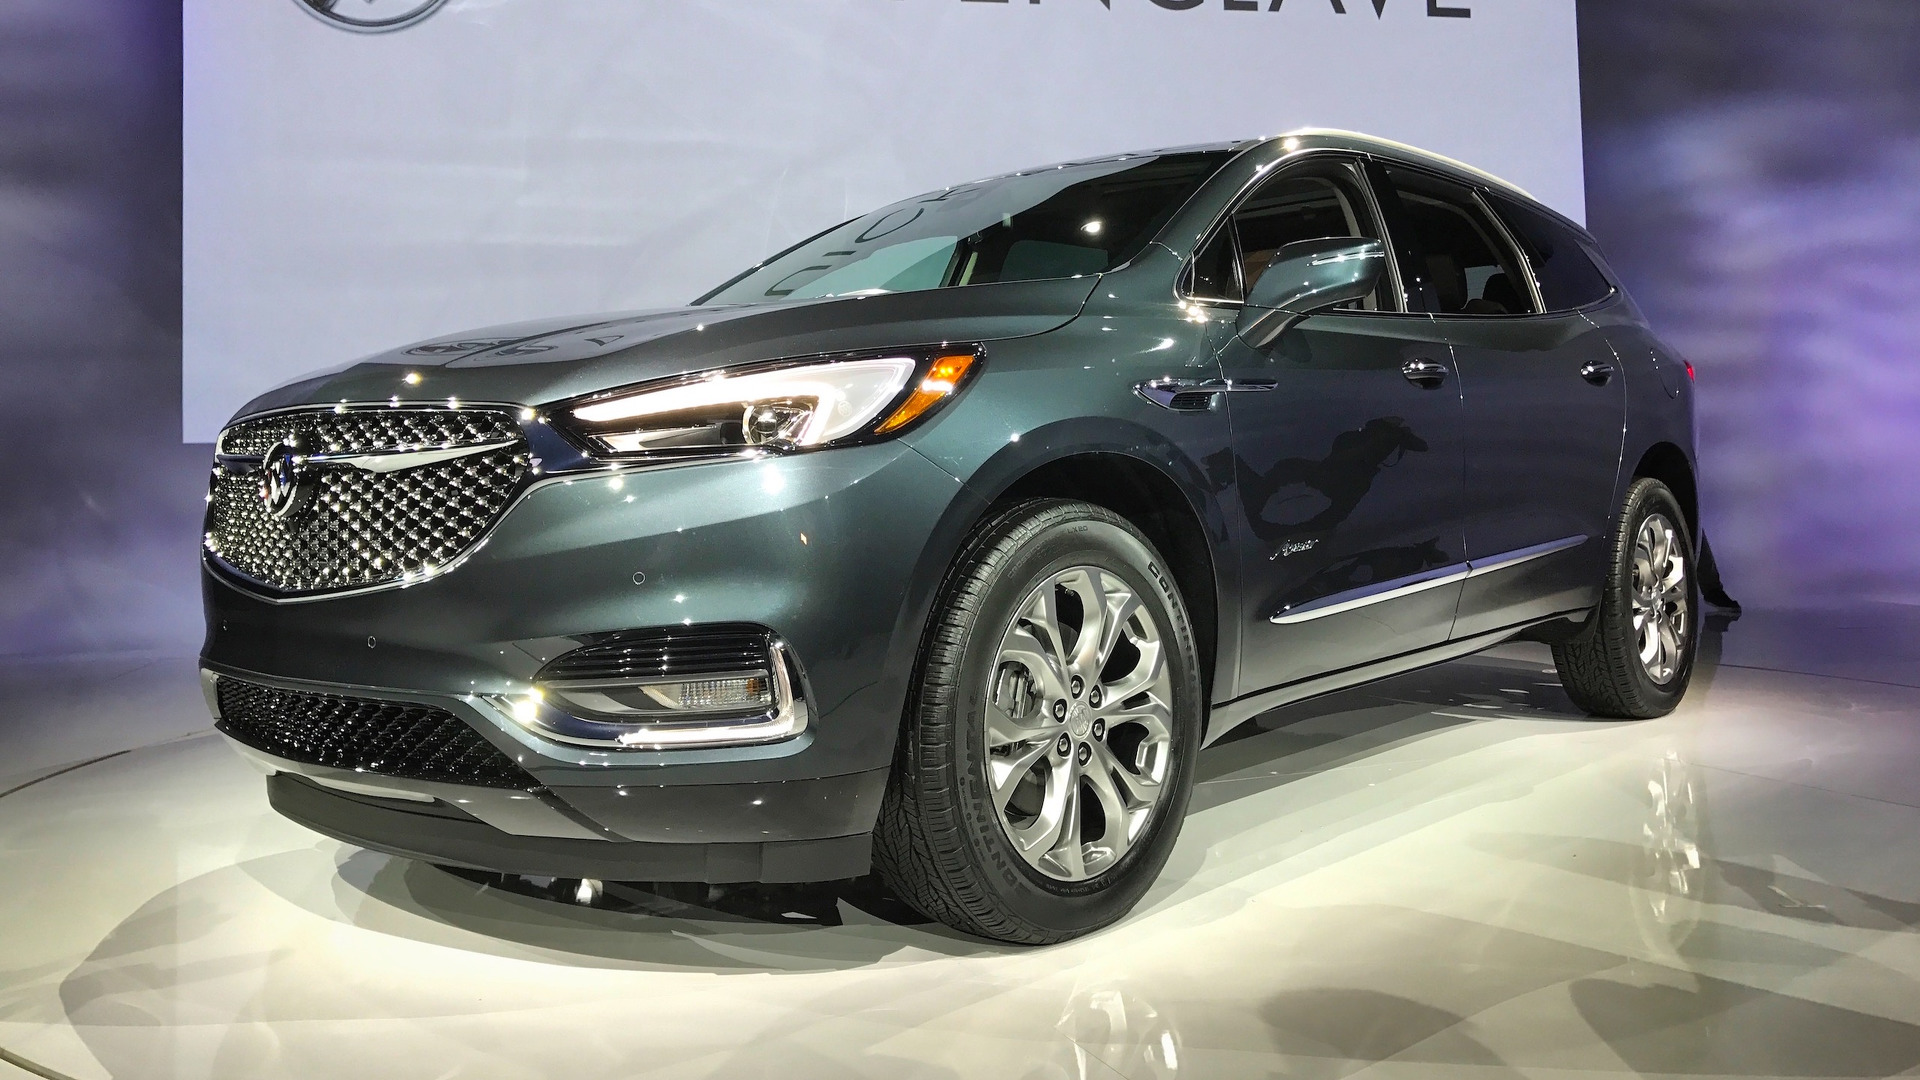 2018 Buick Enclave Avenir Arrives Looking Luxurious In New